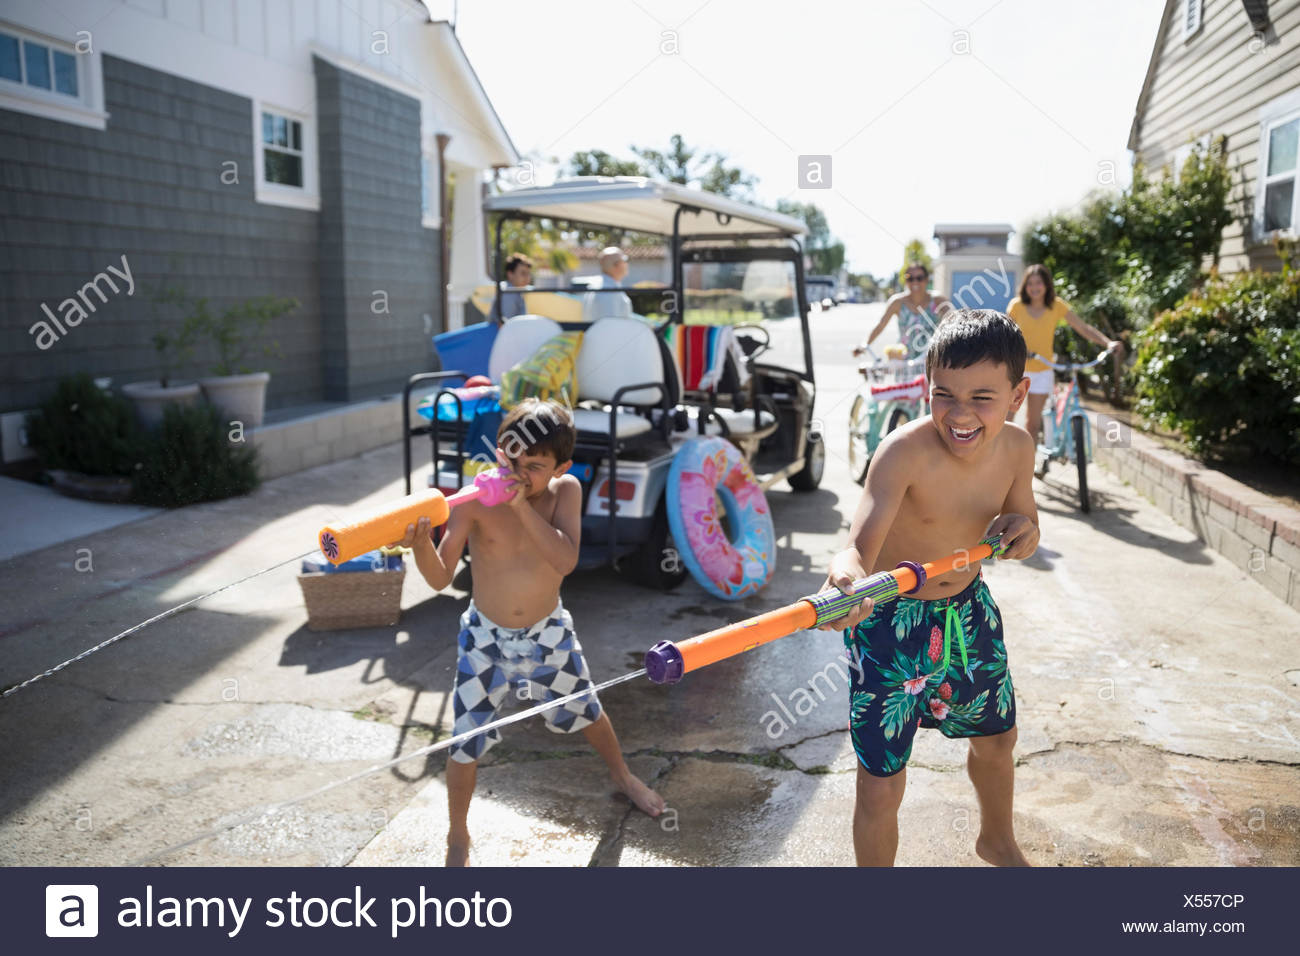 Brothers in swim trunks playing with squirt guns in summer driveway - Stock Image